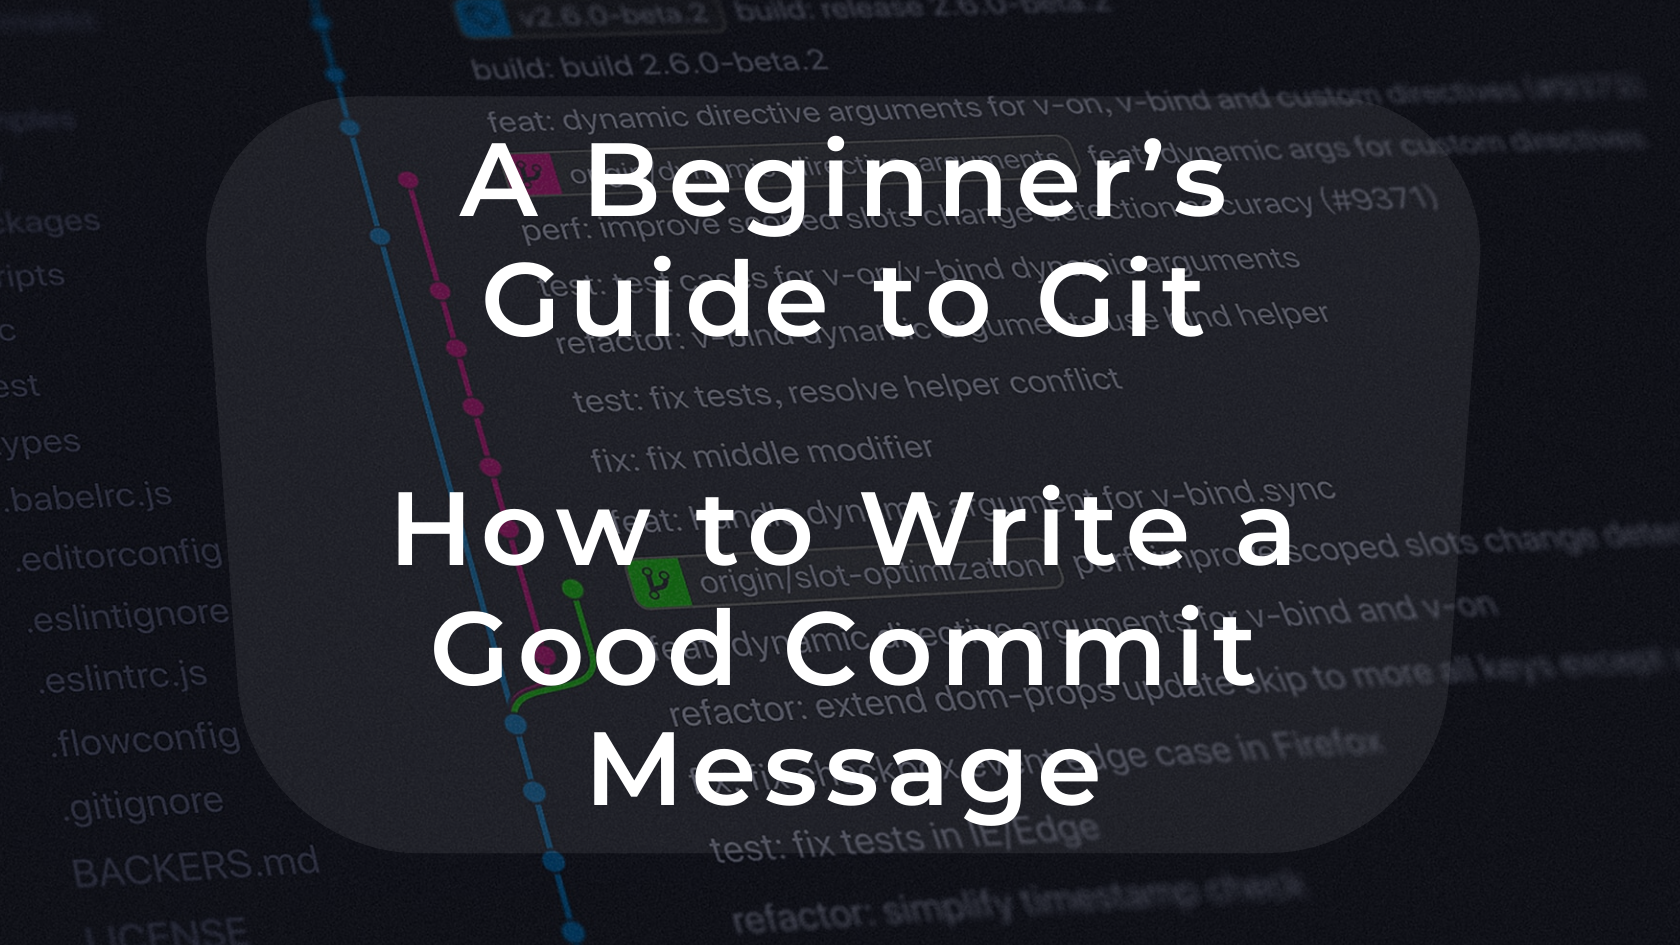 A Beginner's Guide to Git — How to Write a Good Commit Message